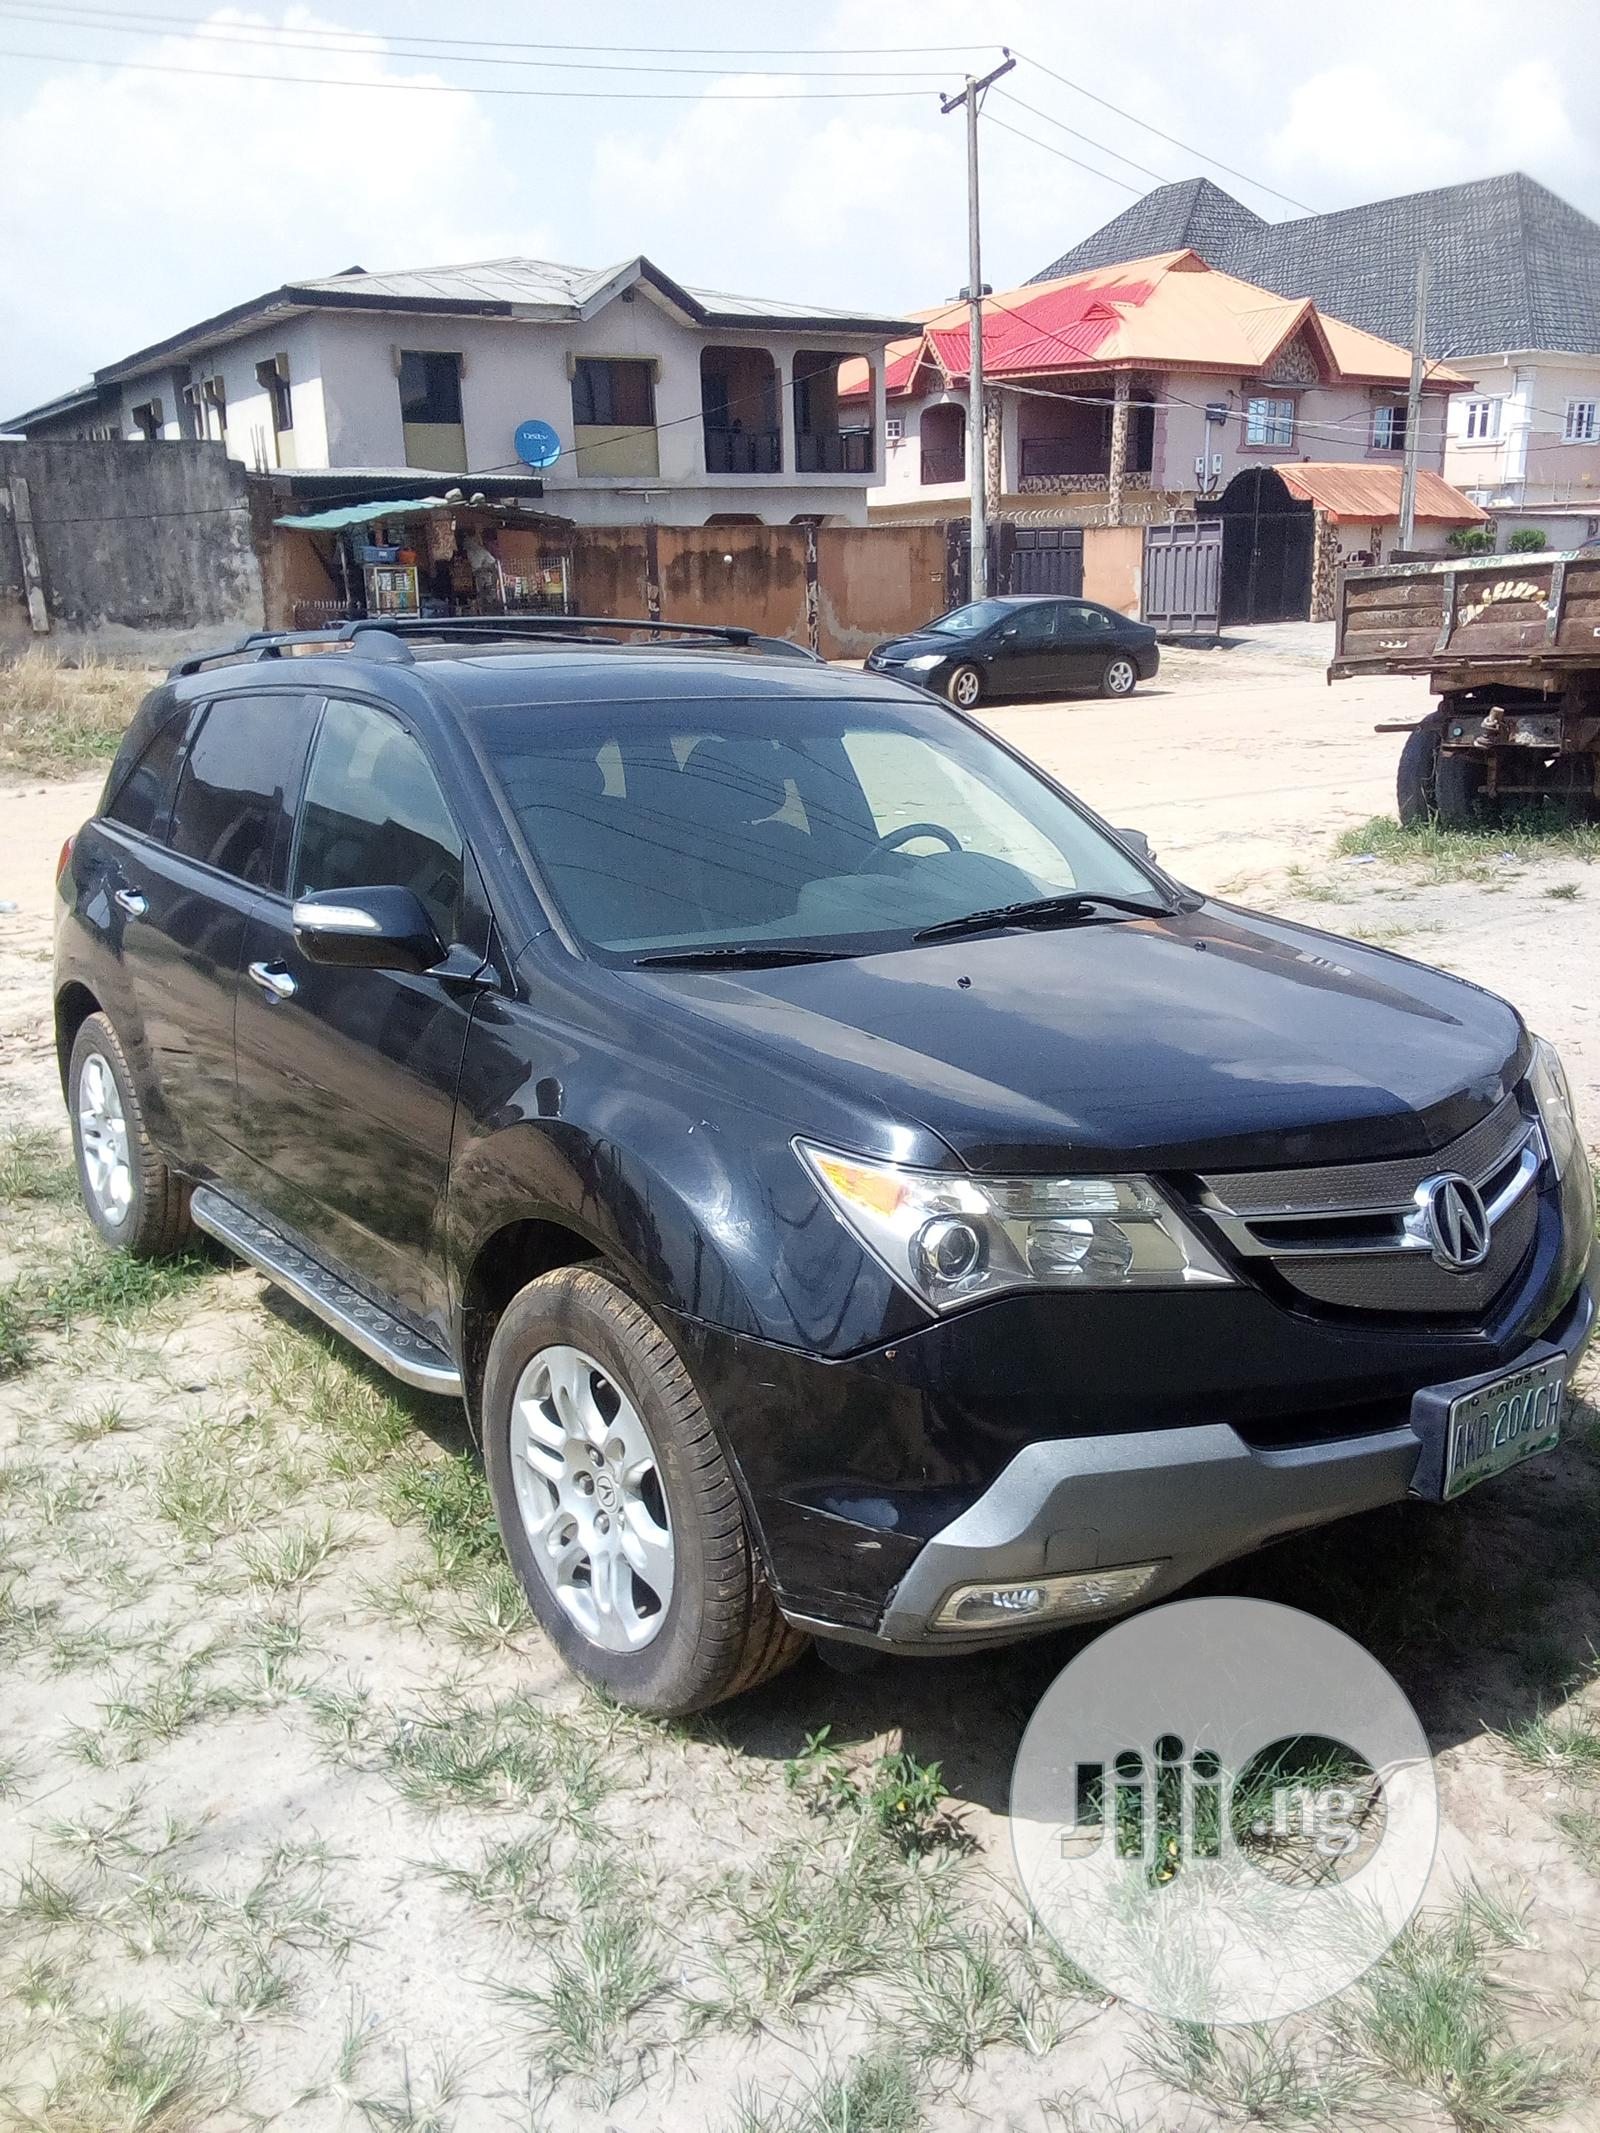 Archive Acura Mdx 2009 Black In Gbagada Cars Kanmi Oye Jiji Ng For Sale In Gbagada Buy Cars From Kanmi Oye On Jiji Ng